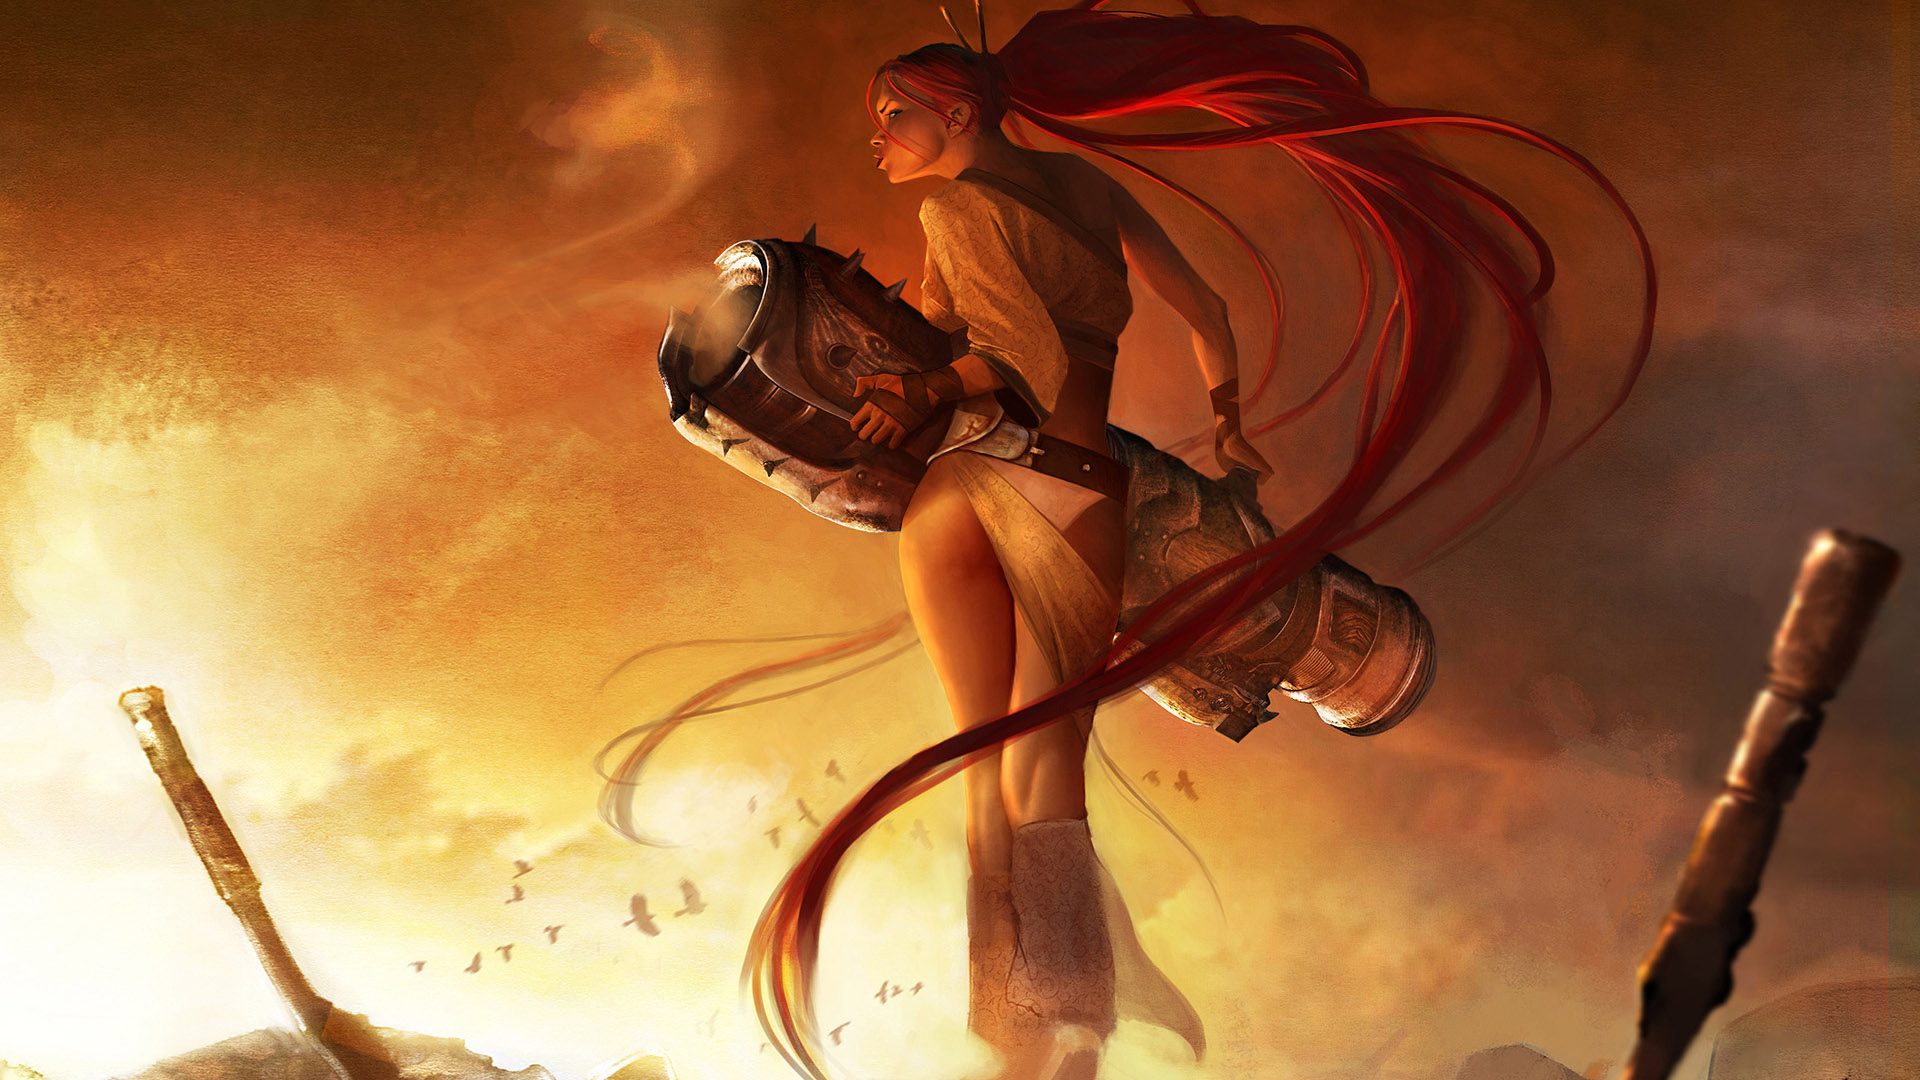 3d Sword Games Hd Wallpaper For Mobile: Heavenly Sword Game Awesome Wallpapers